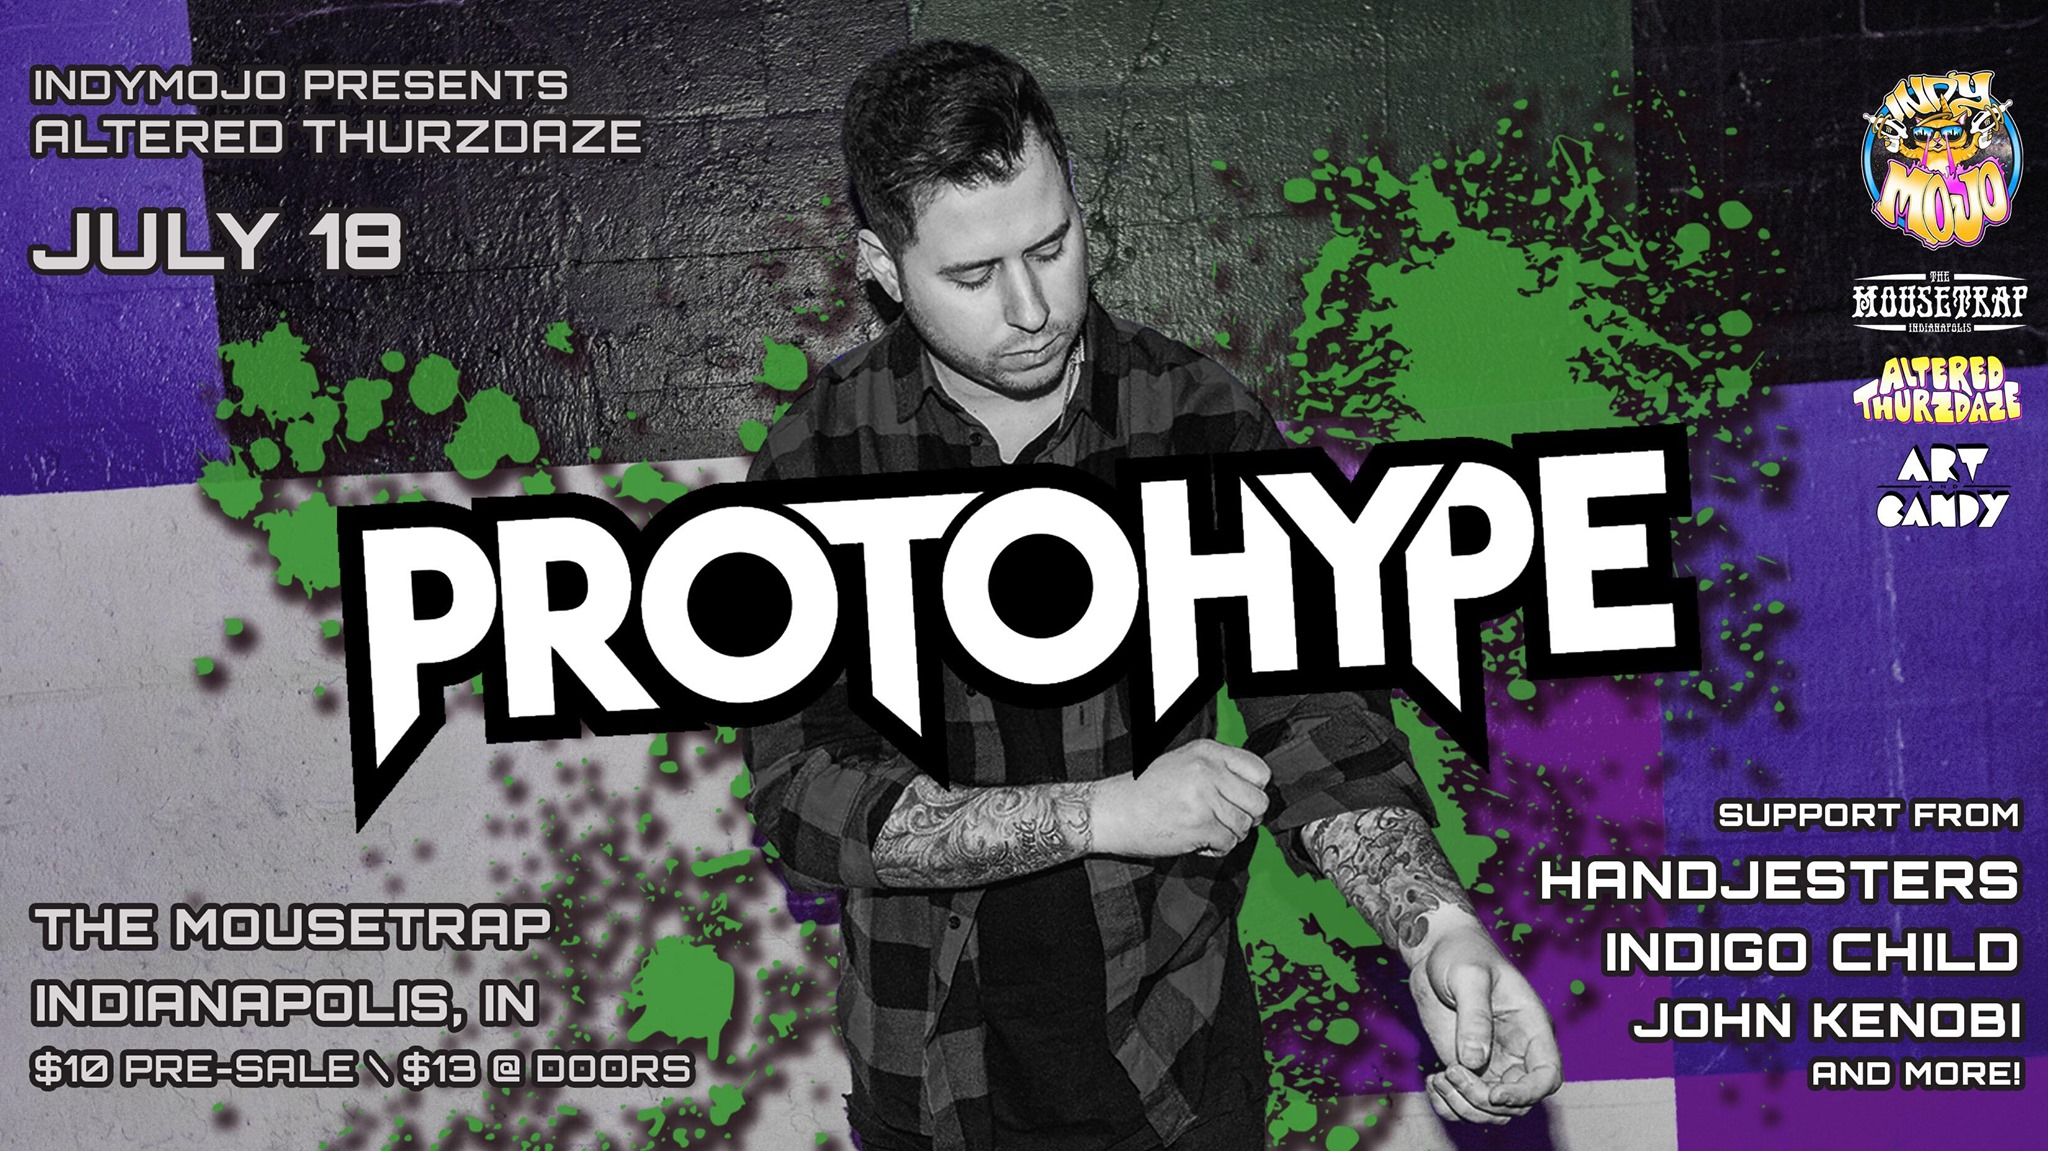 Altered Thurzdaze w/ Protohype - Thursday, July 18th